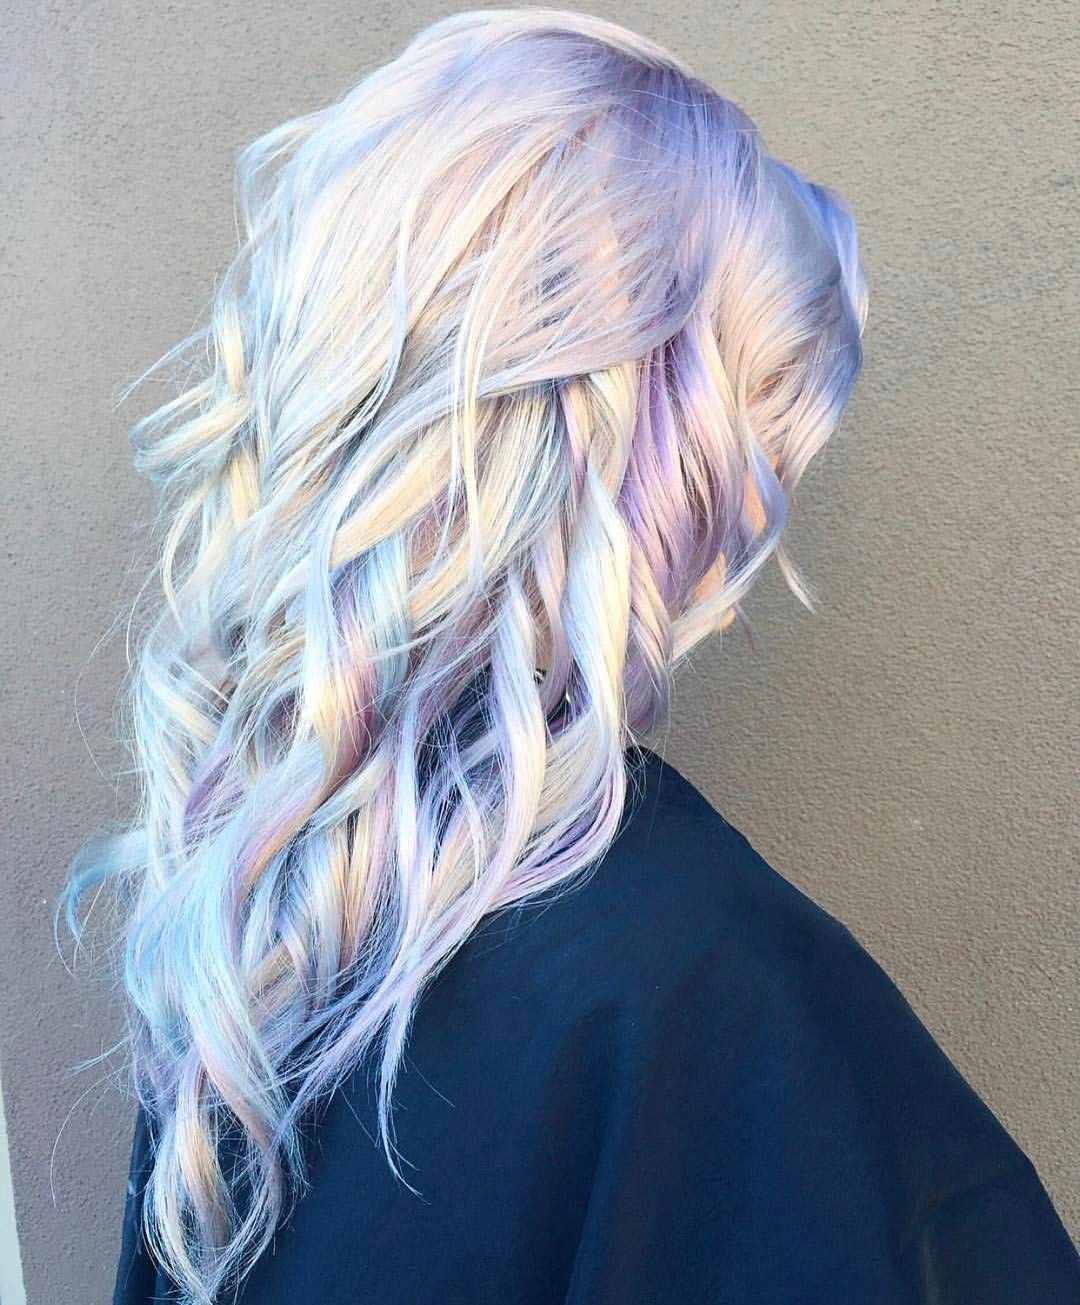 This holographic hair trend is what it would look like if fairies